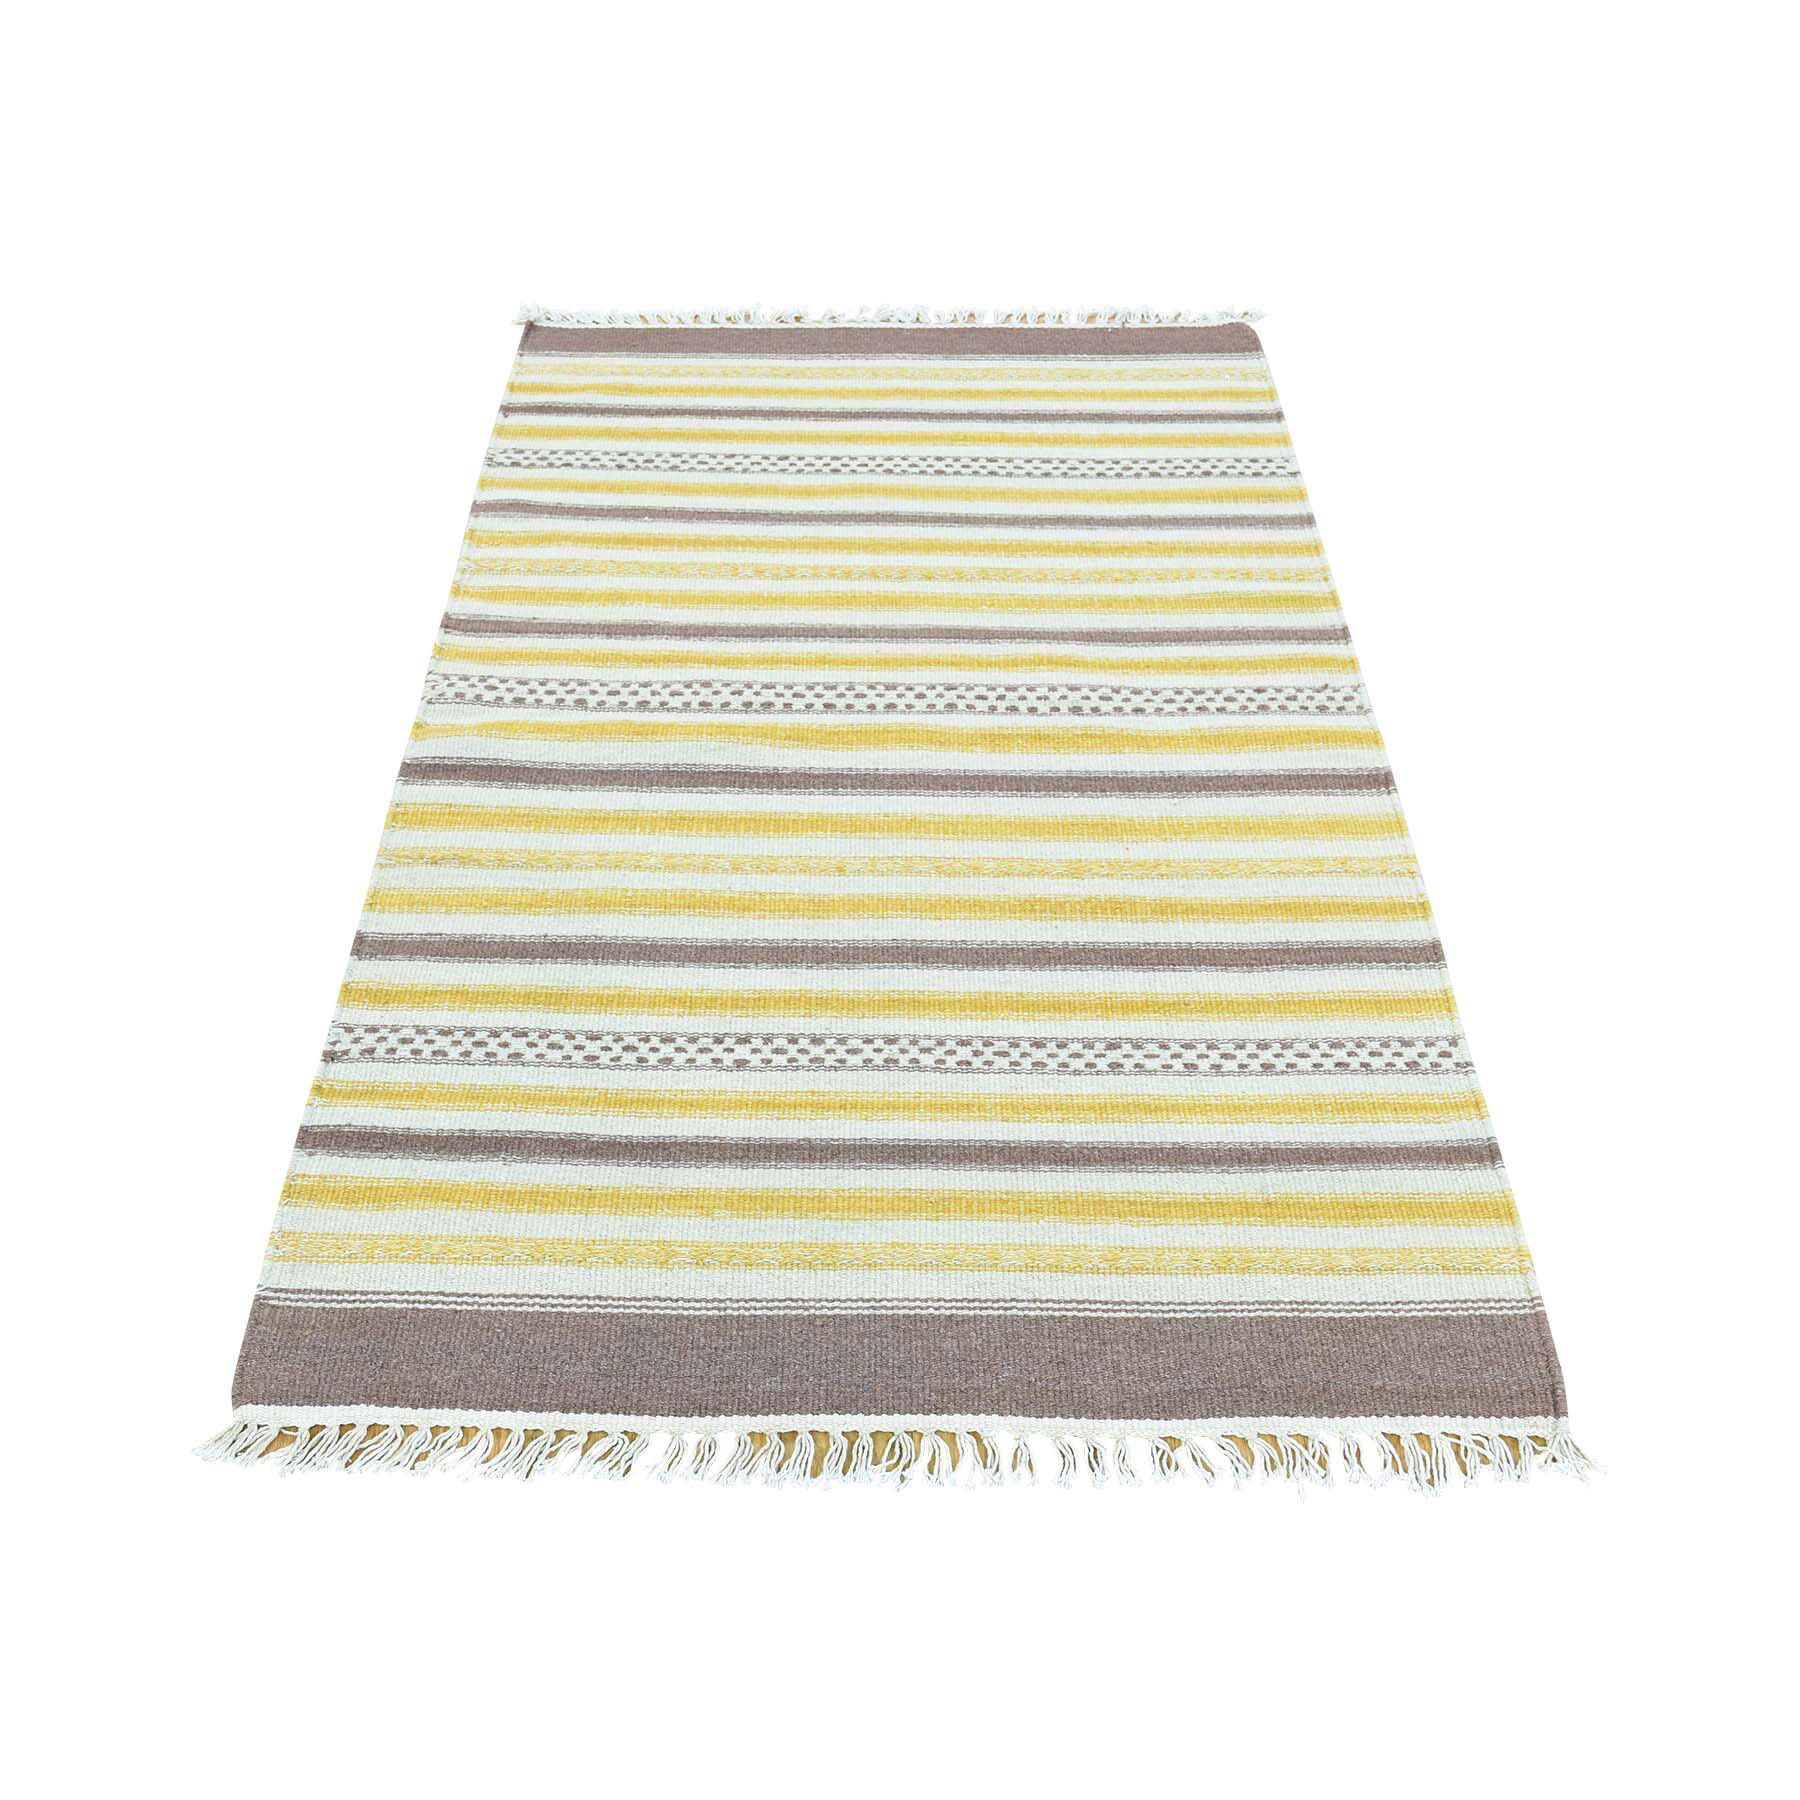 Durie Kilim Flat Weave Striped Hand-Knotted Yellow/Ivory/Coffee Brown Area Rug